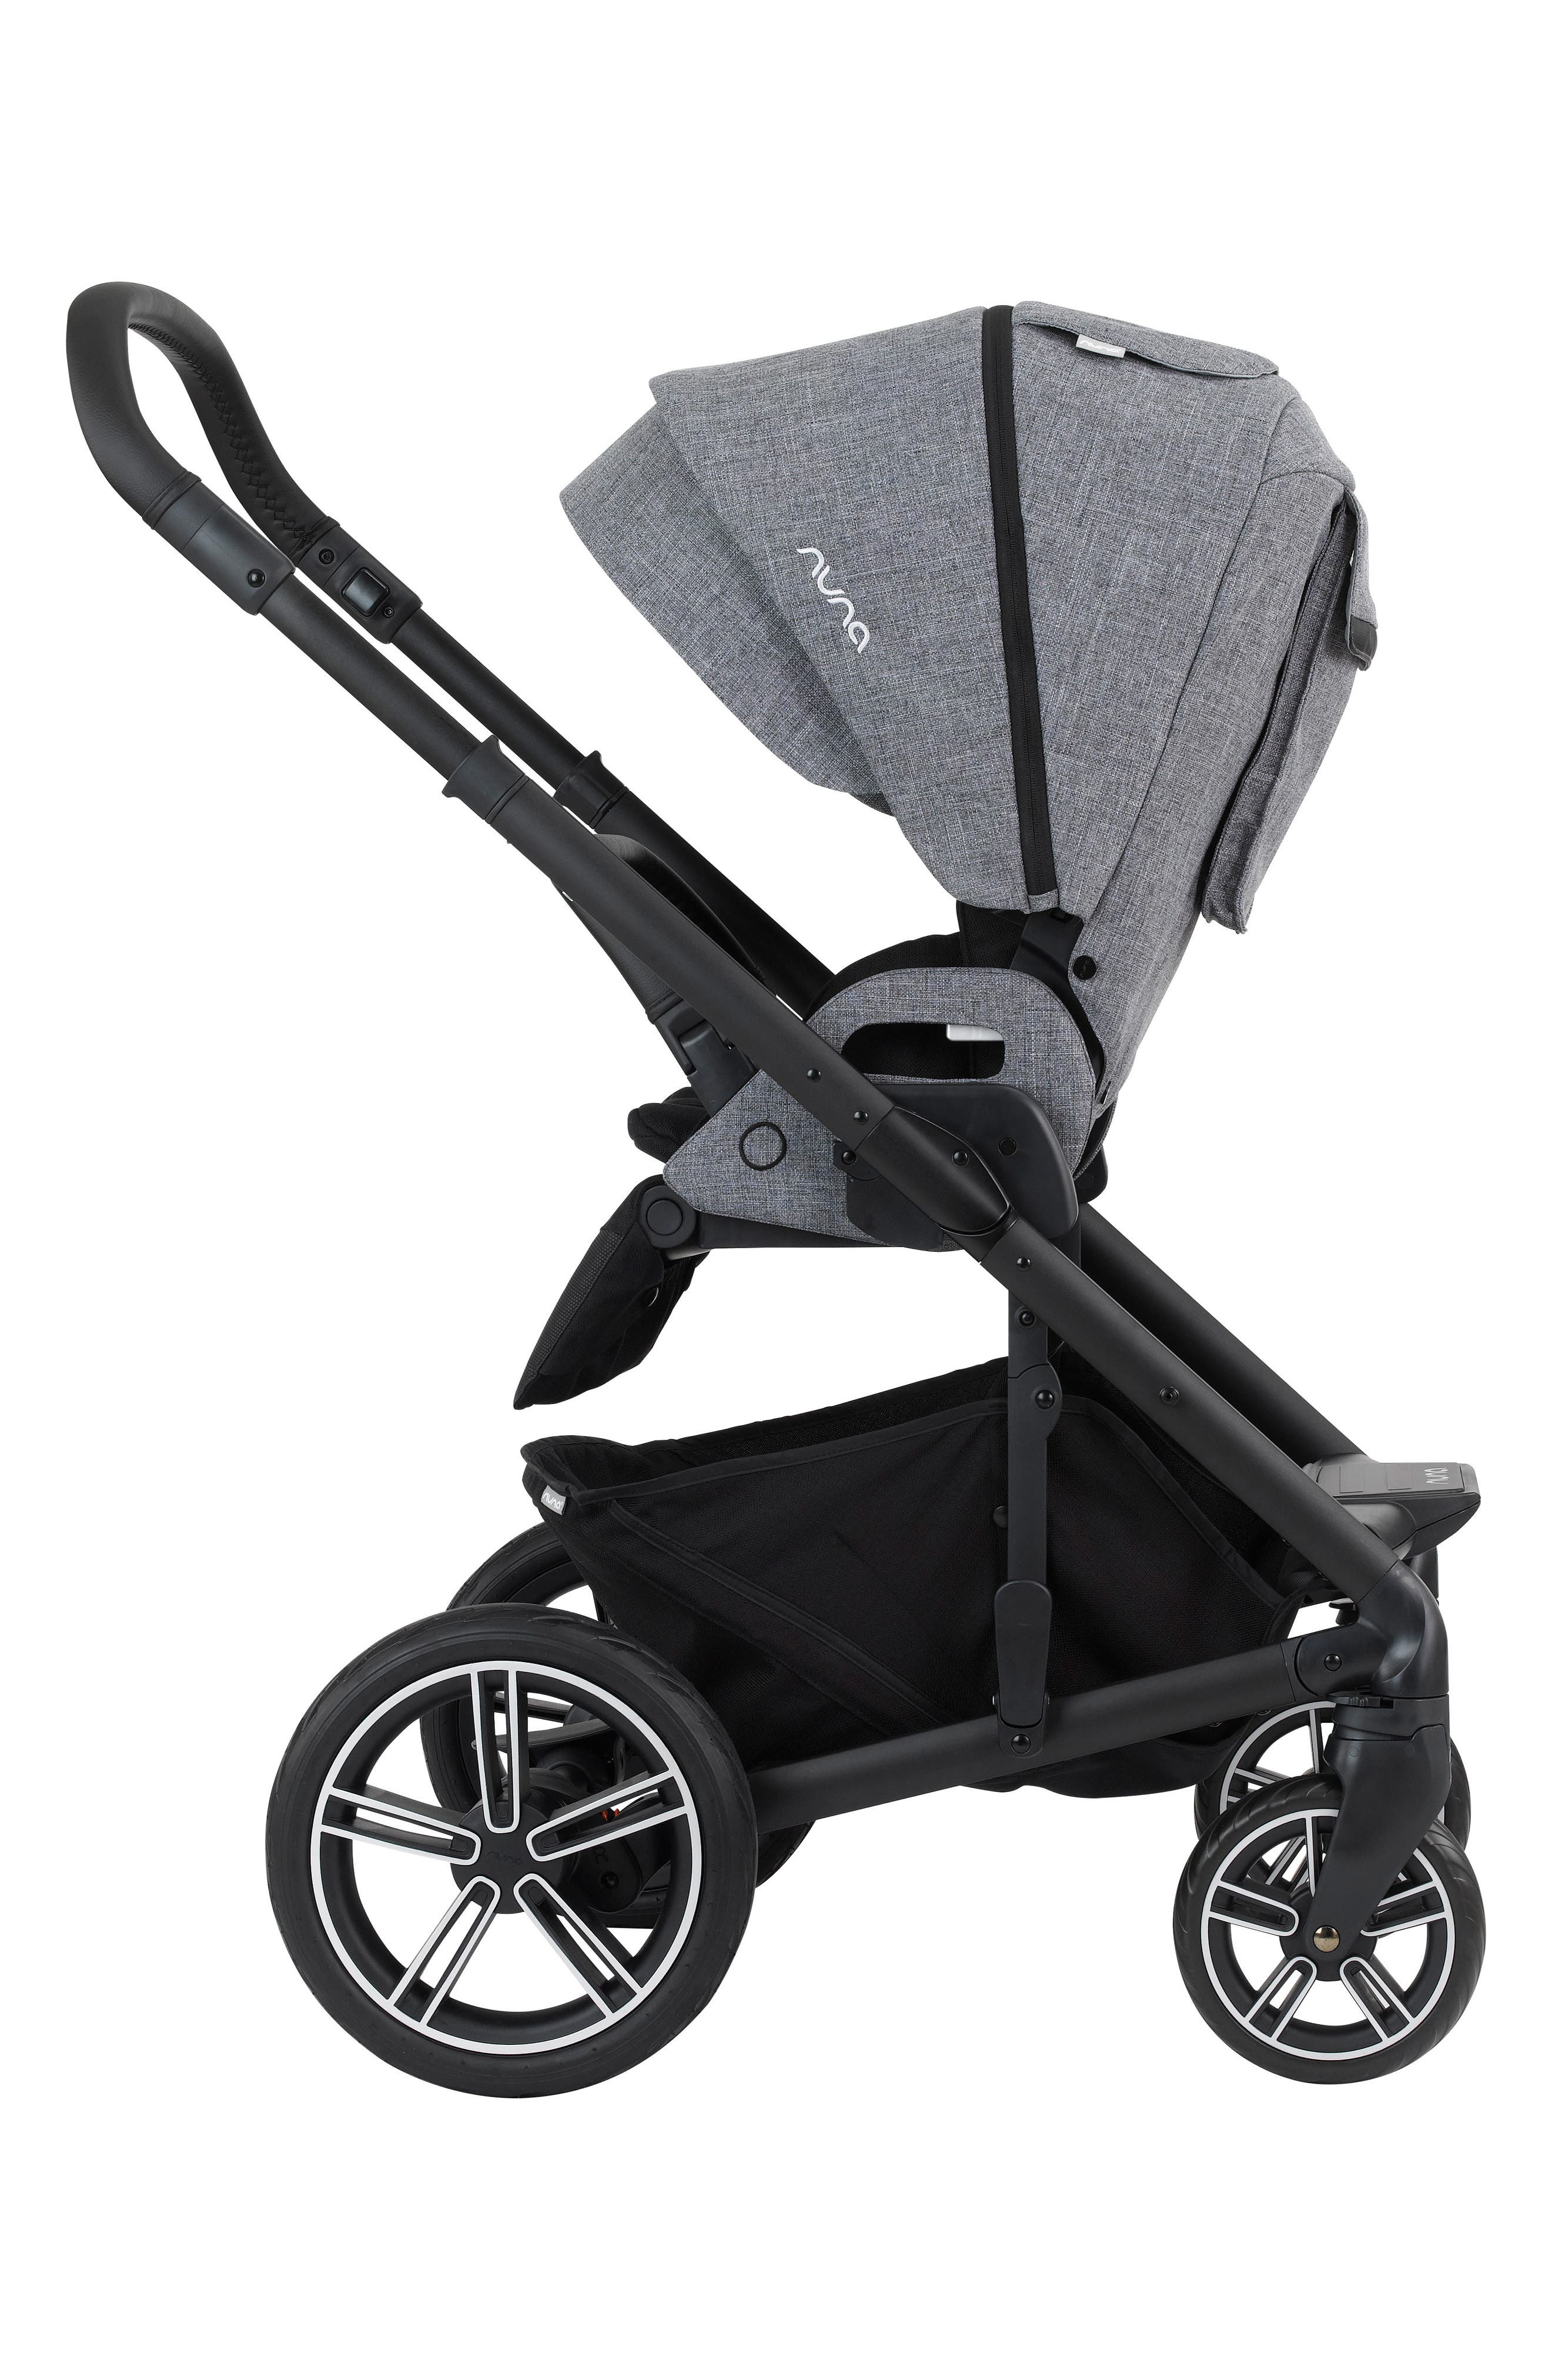 MIXX<sup>™</sup> 2 Stroller System & PIPA<sup>™</sup> Car Seat Set,                             Alternate thumbnail 7, color,                             020